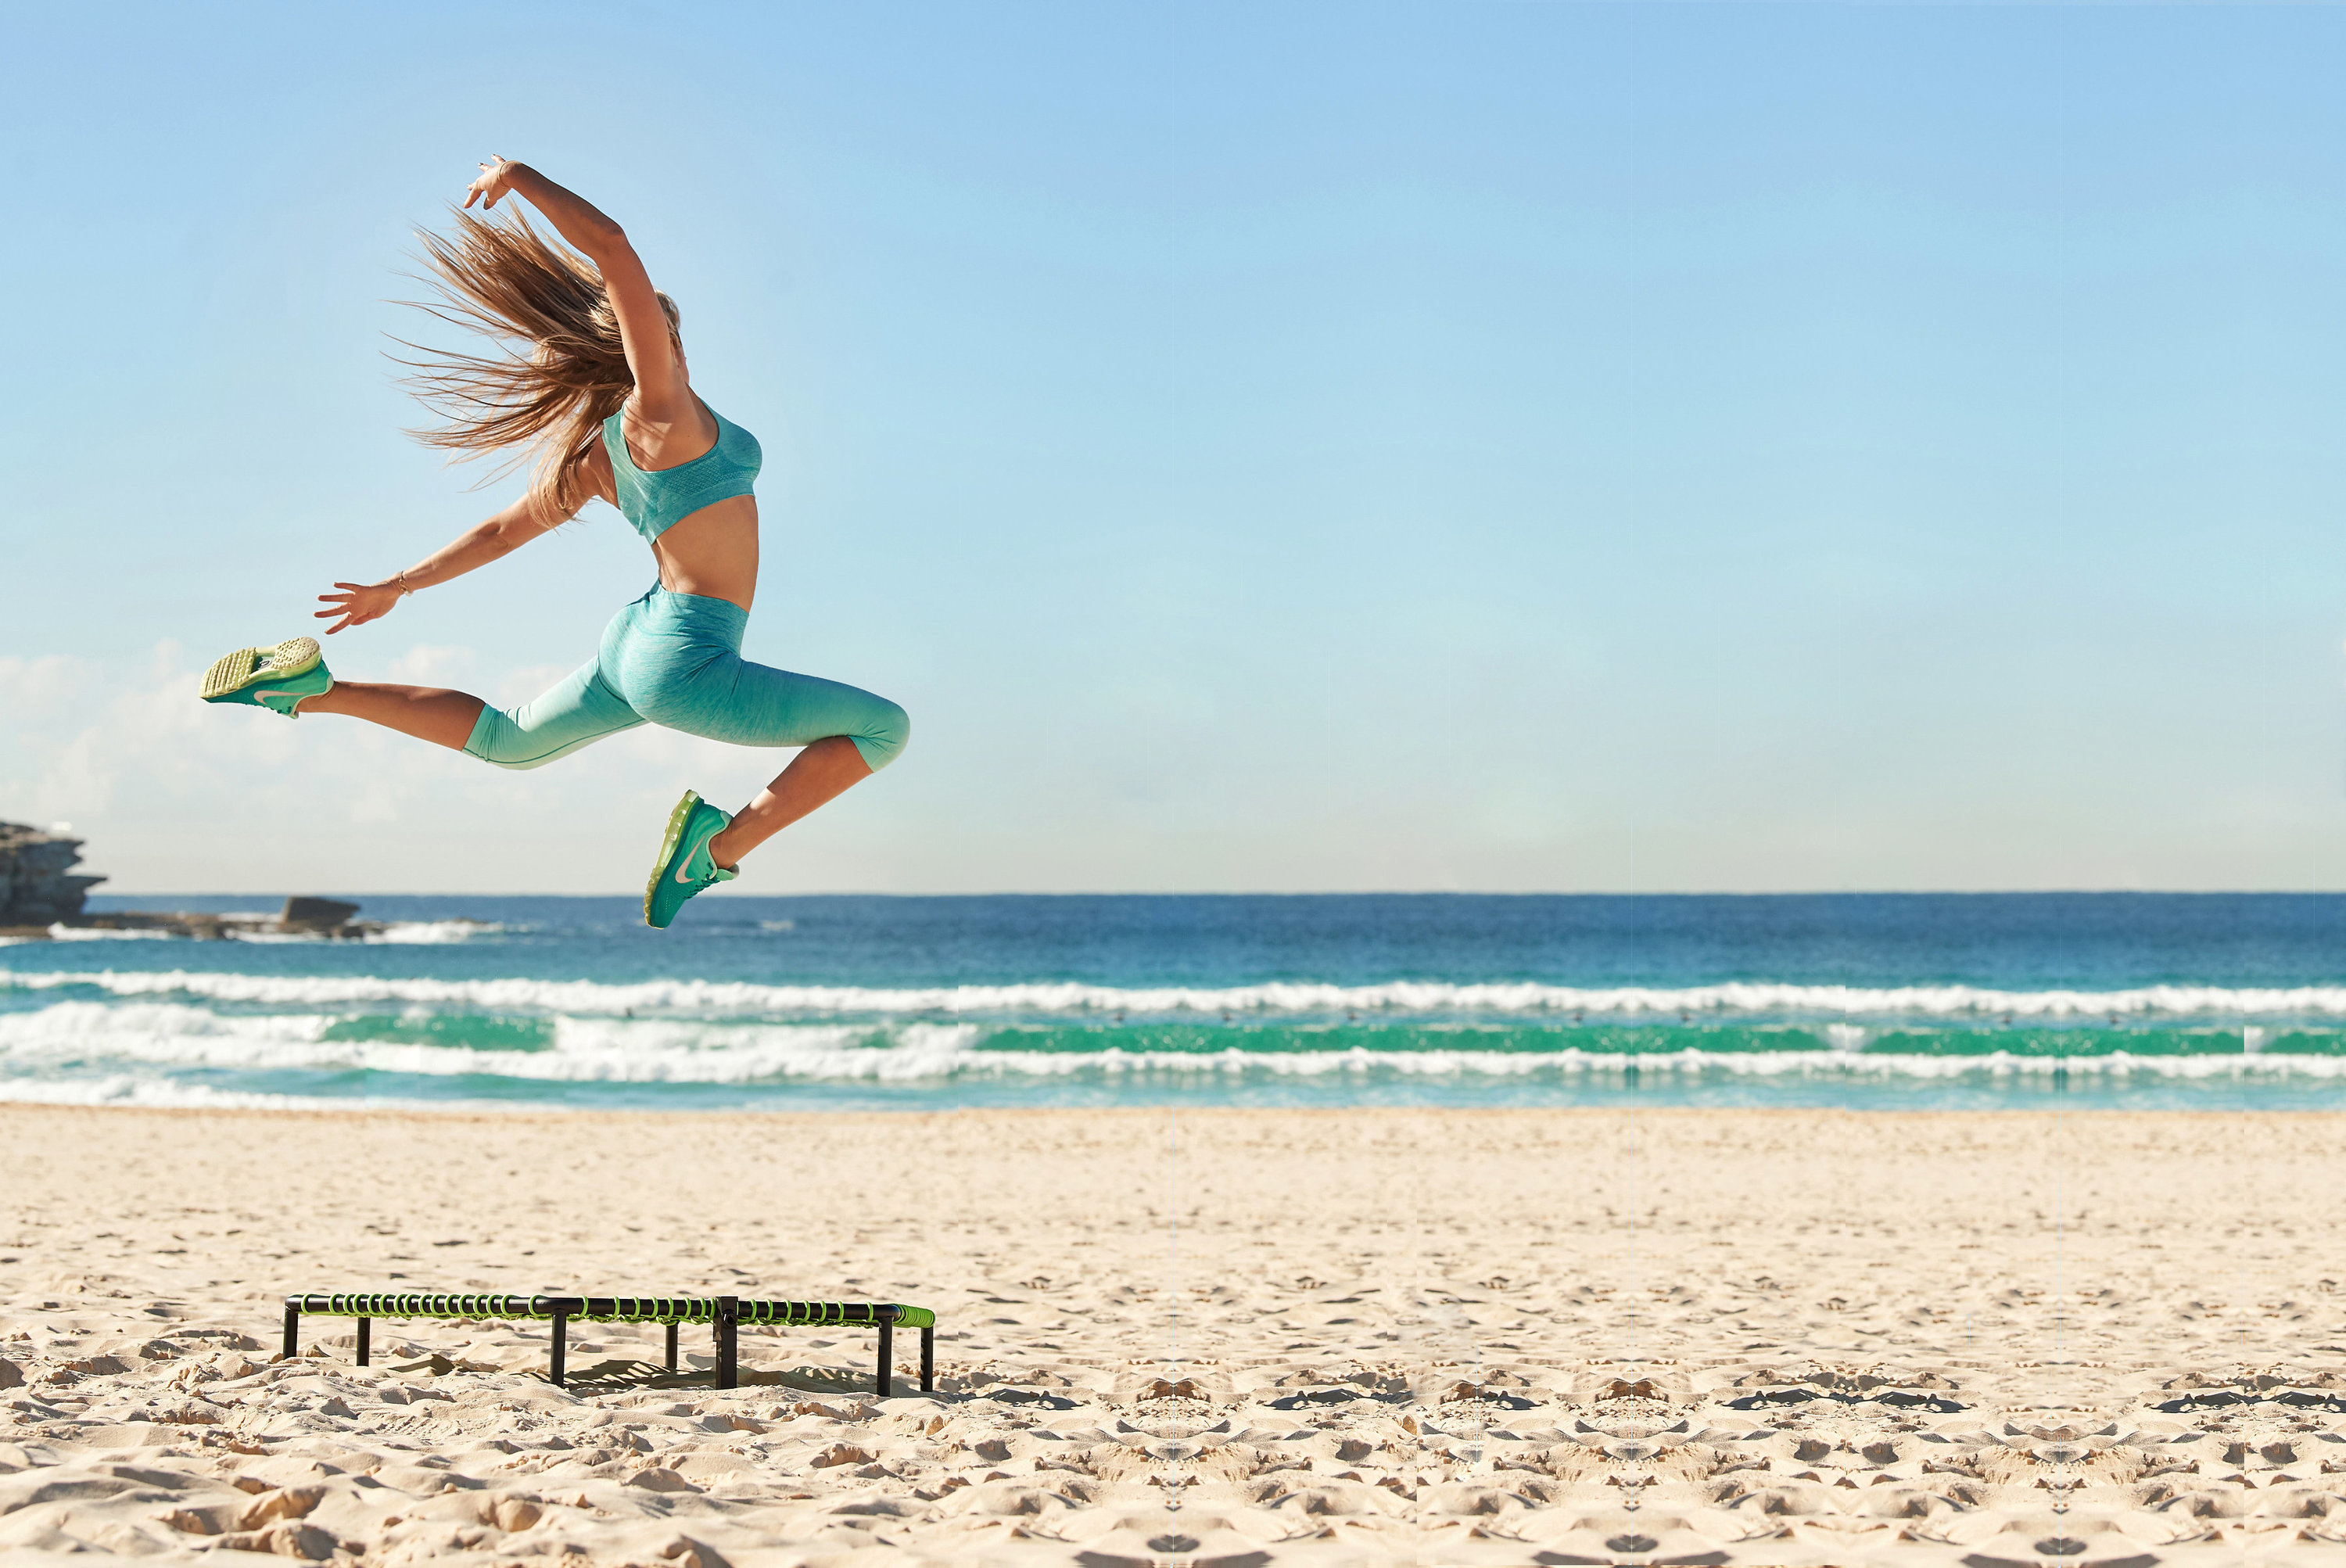 Woman jumping on trampoline on the beach.